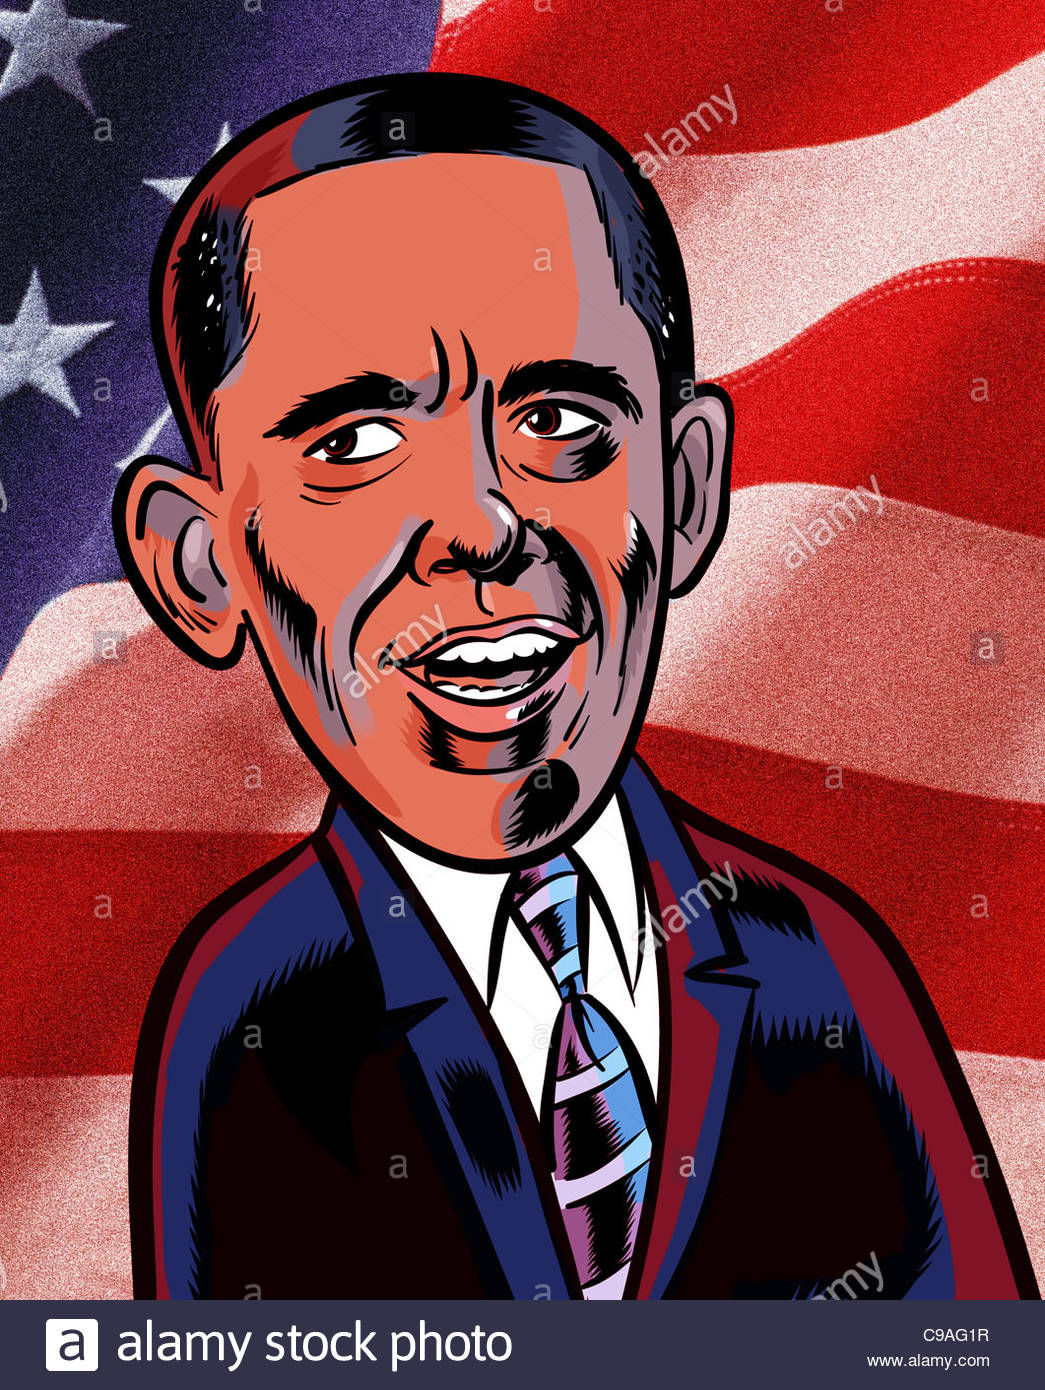 Obama redblue - Stock Image